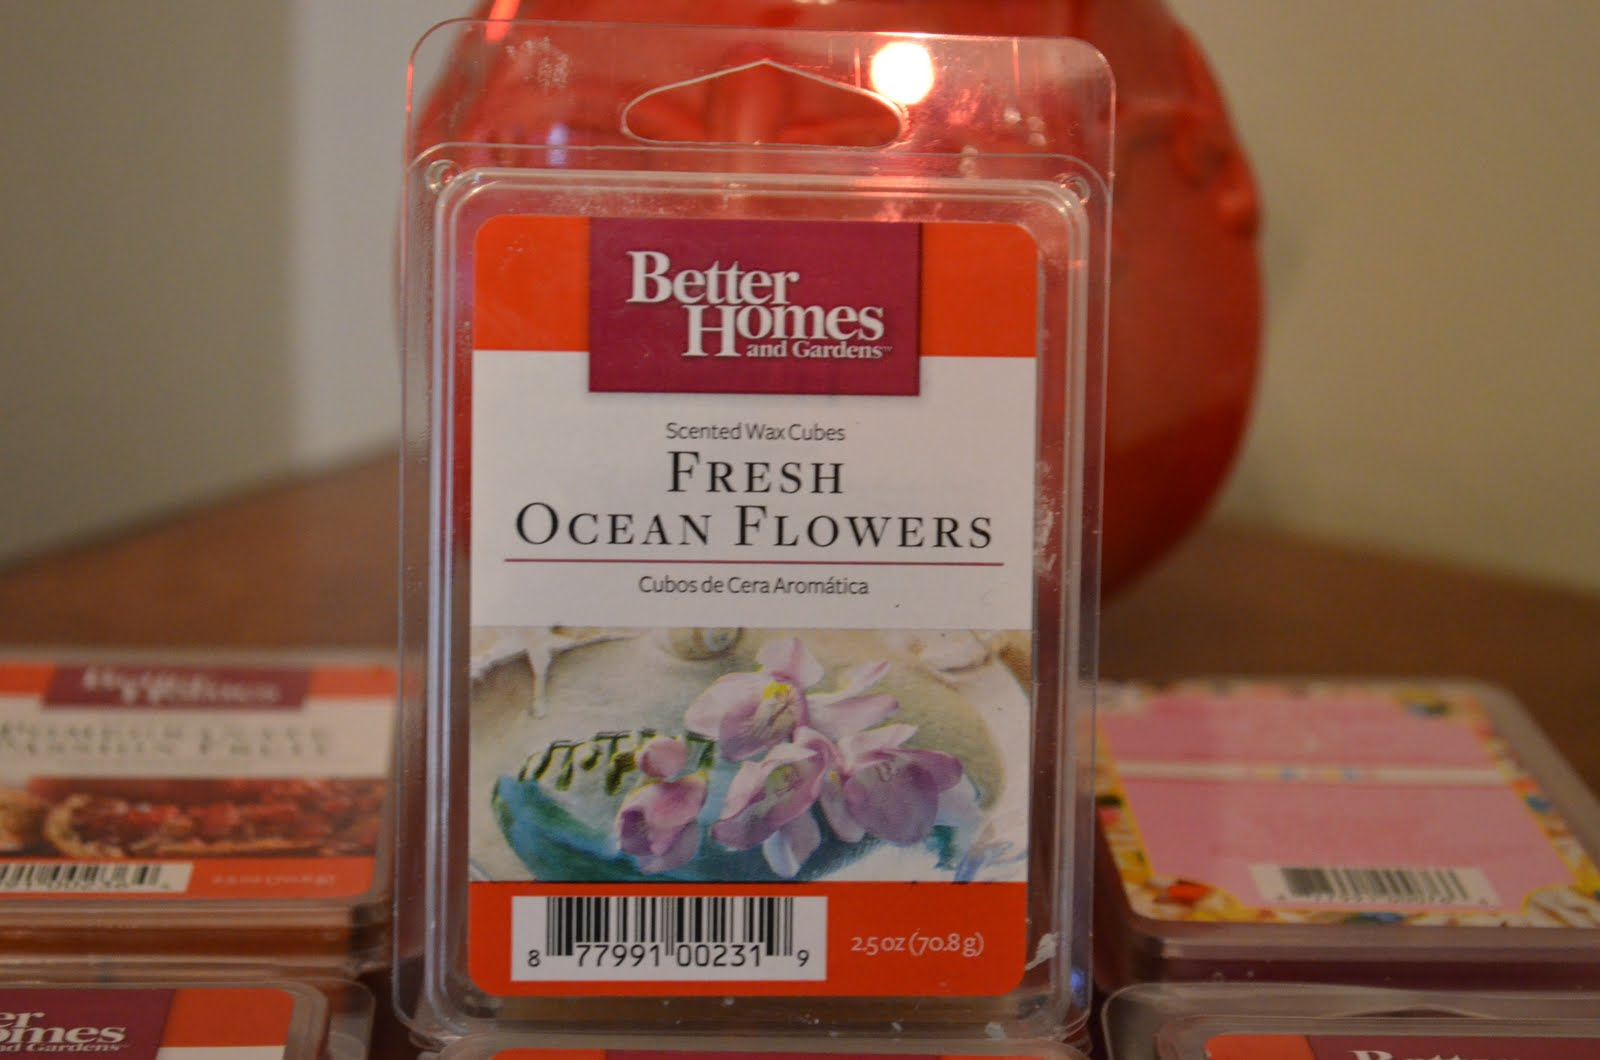 excellent better homes and gardens scented wax cubes.  BH G Scented Wax Cubes in Fresh Ocean Flowers I used 1 of these cubes for my first ever trial run the warming system which you can see pics This Army Kind Of Life Better Homes and Gardens Warmer